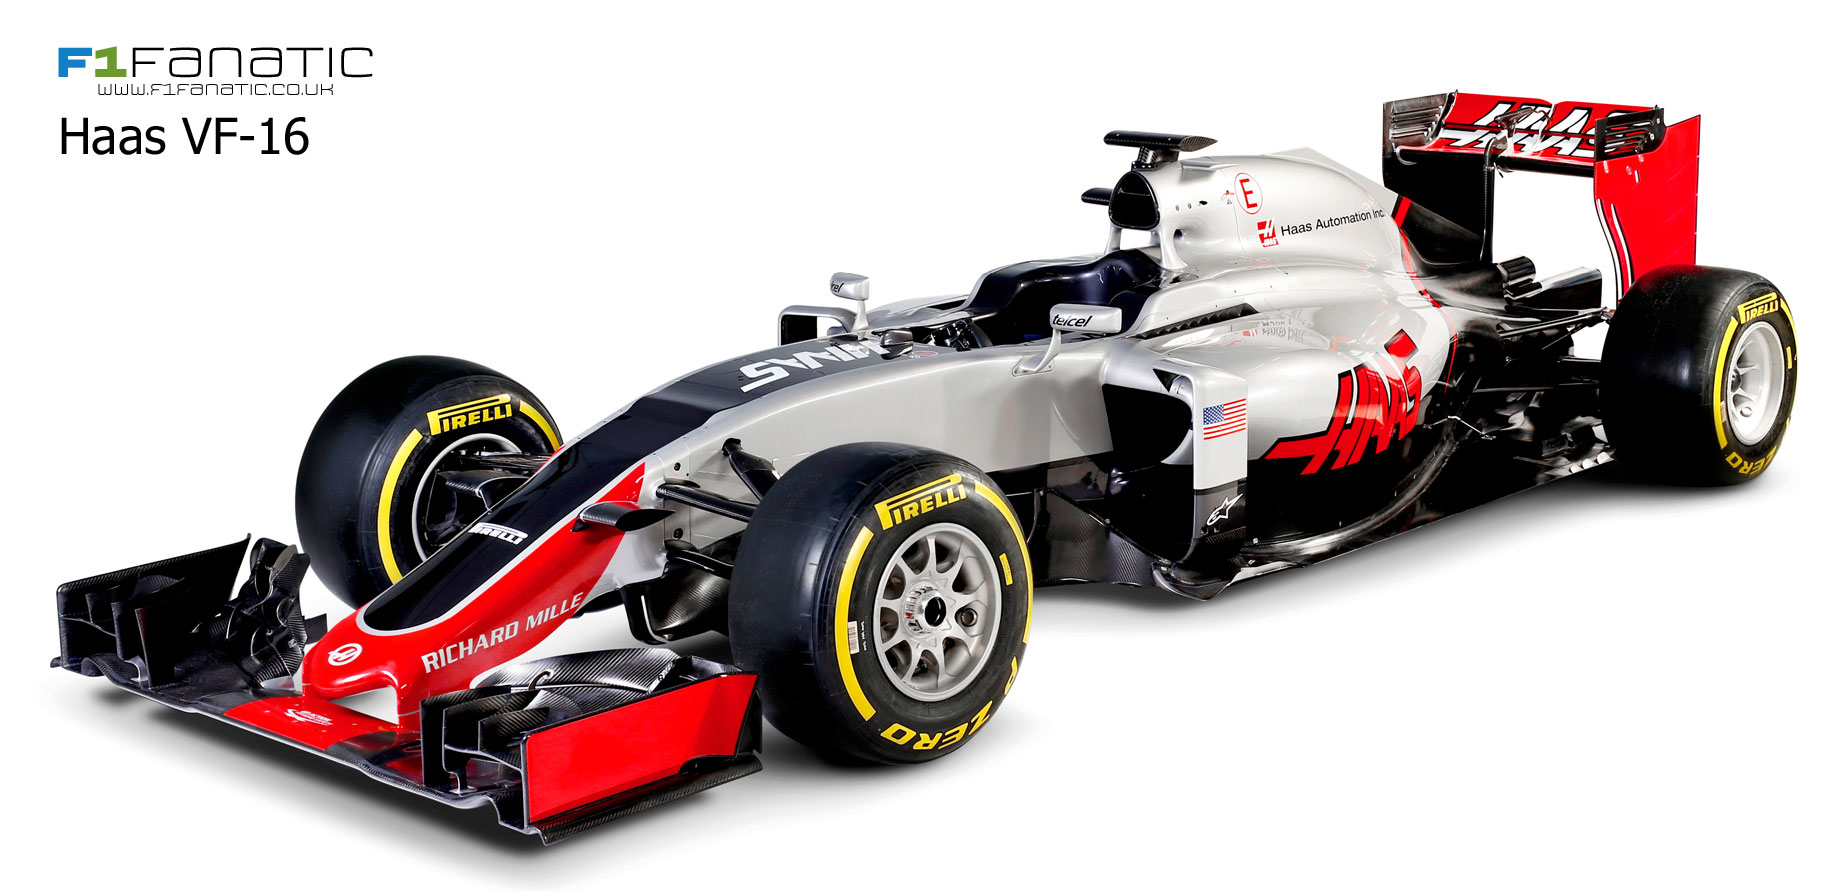 Compare The Haas Vf 16 With Its 2016 Rivals Racefans Wiring Diagram And Mercedes W07 Three Quarter View